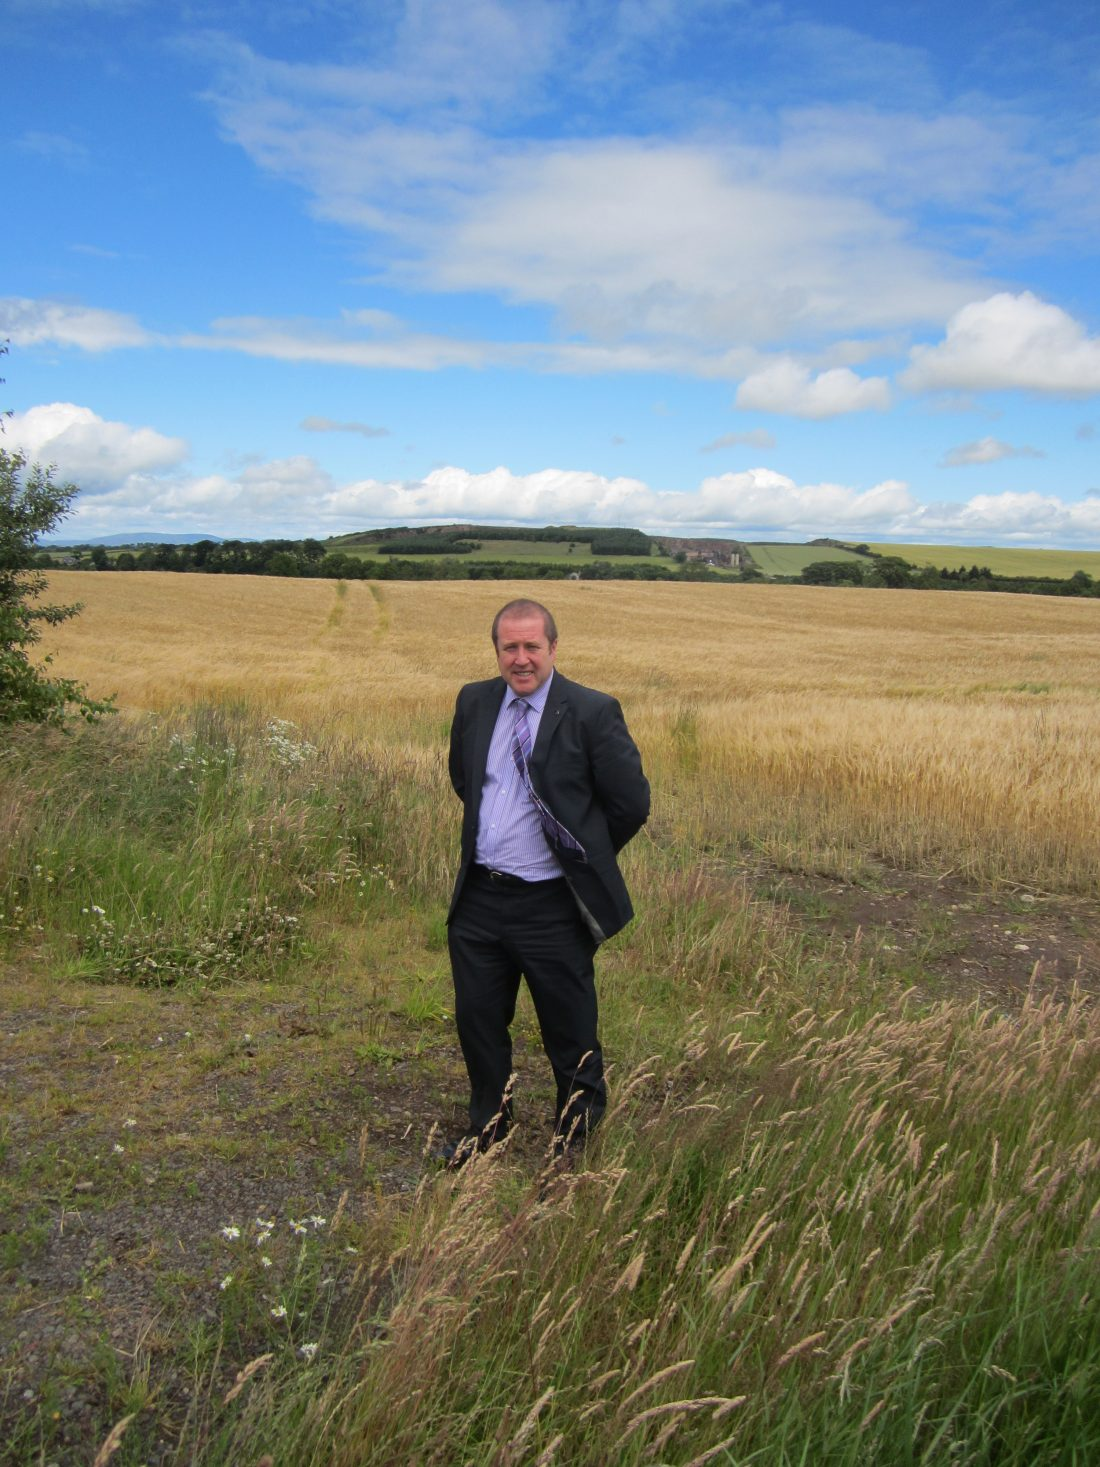 GRAEME DEY MSP WELCOMES REDUCTION IN RURAL CRIME